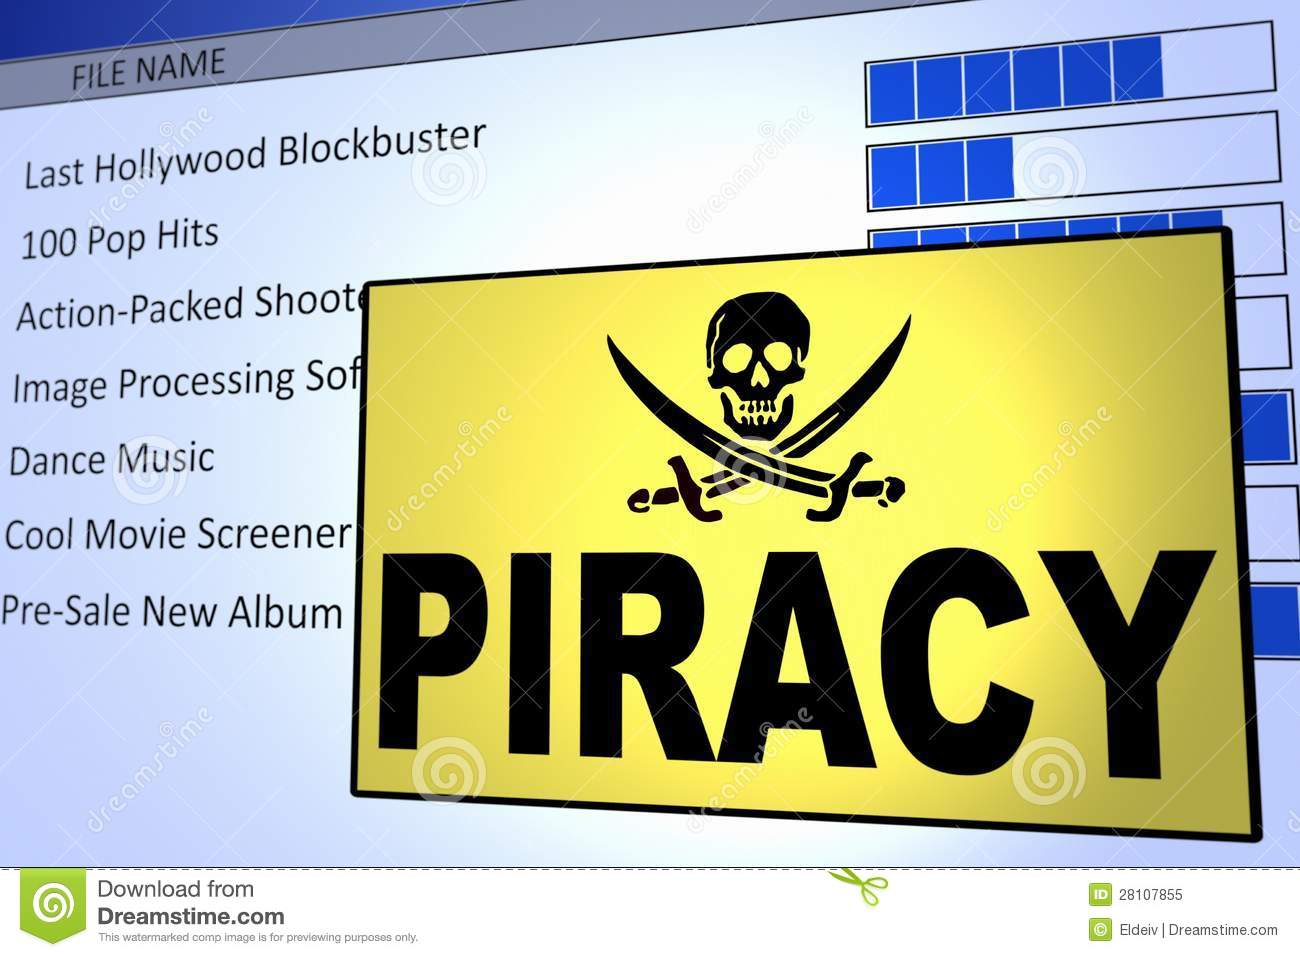 Is illegal downloading really stealing?